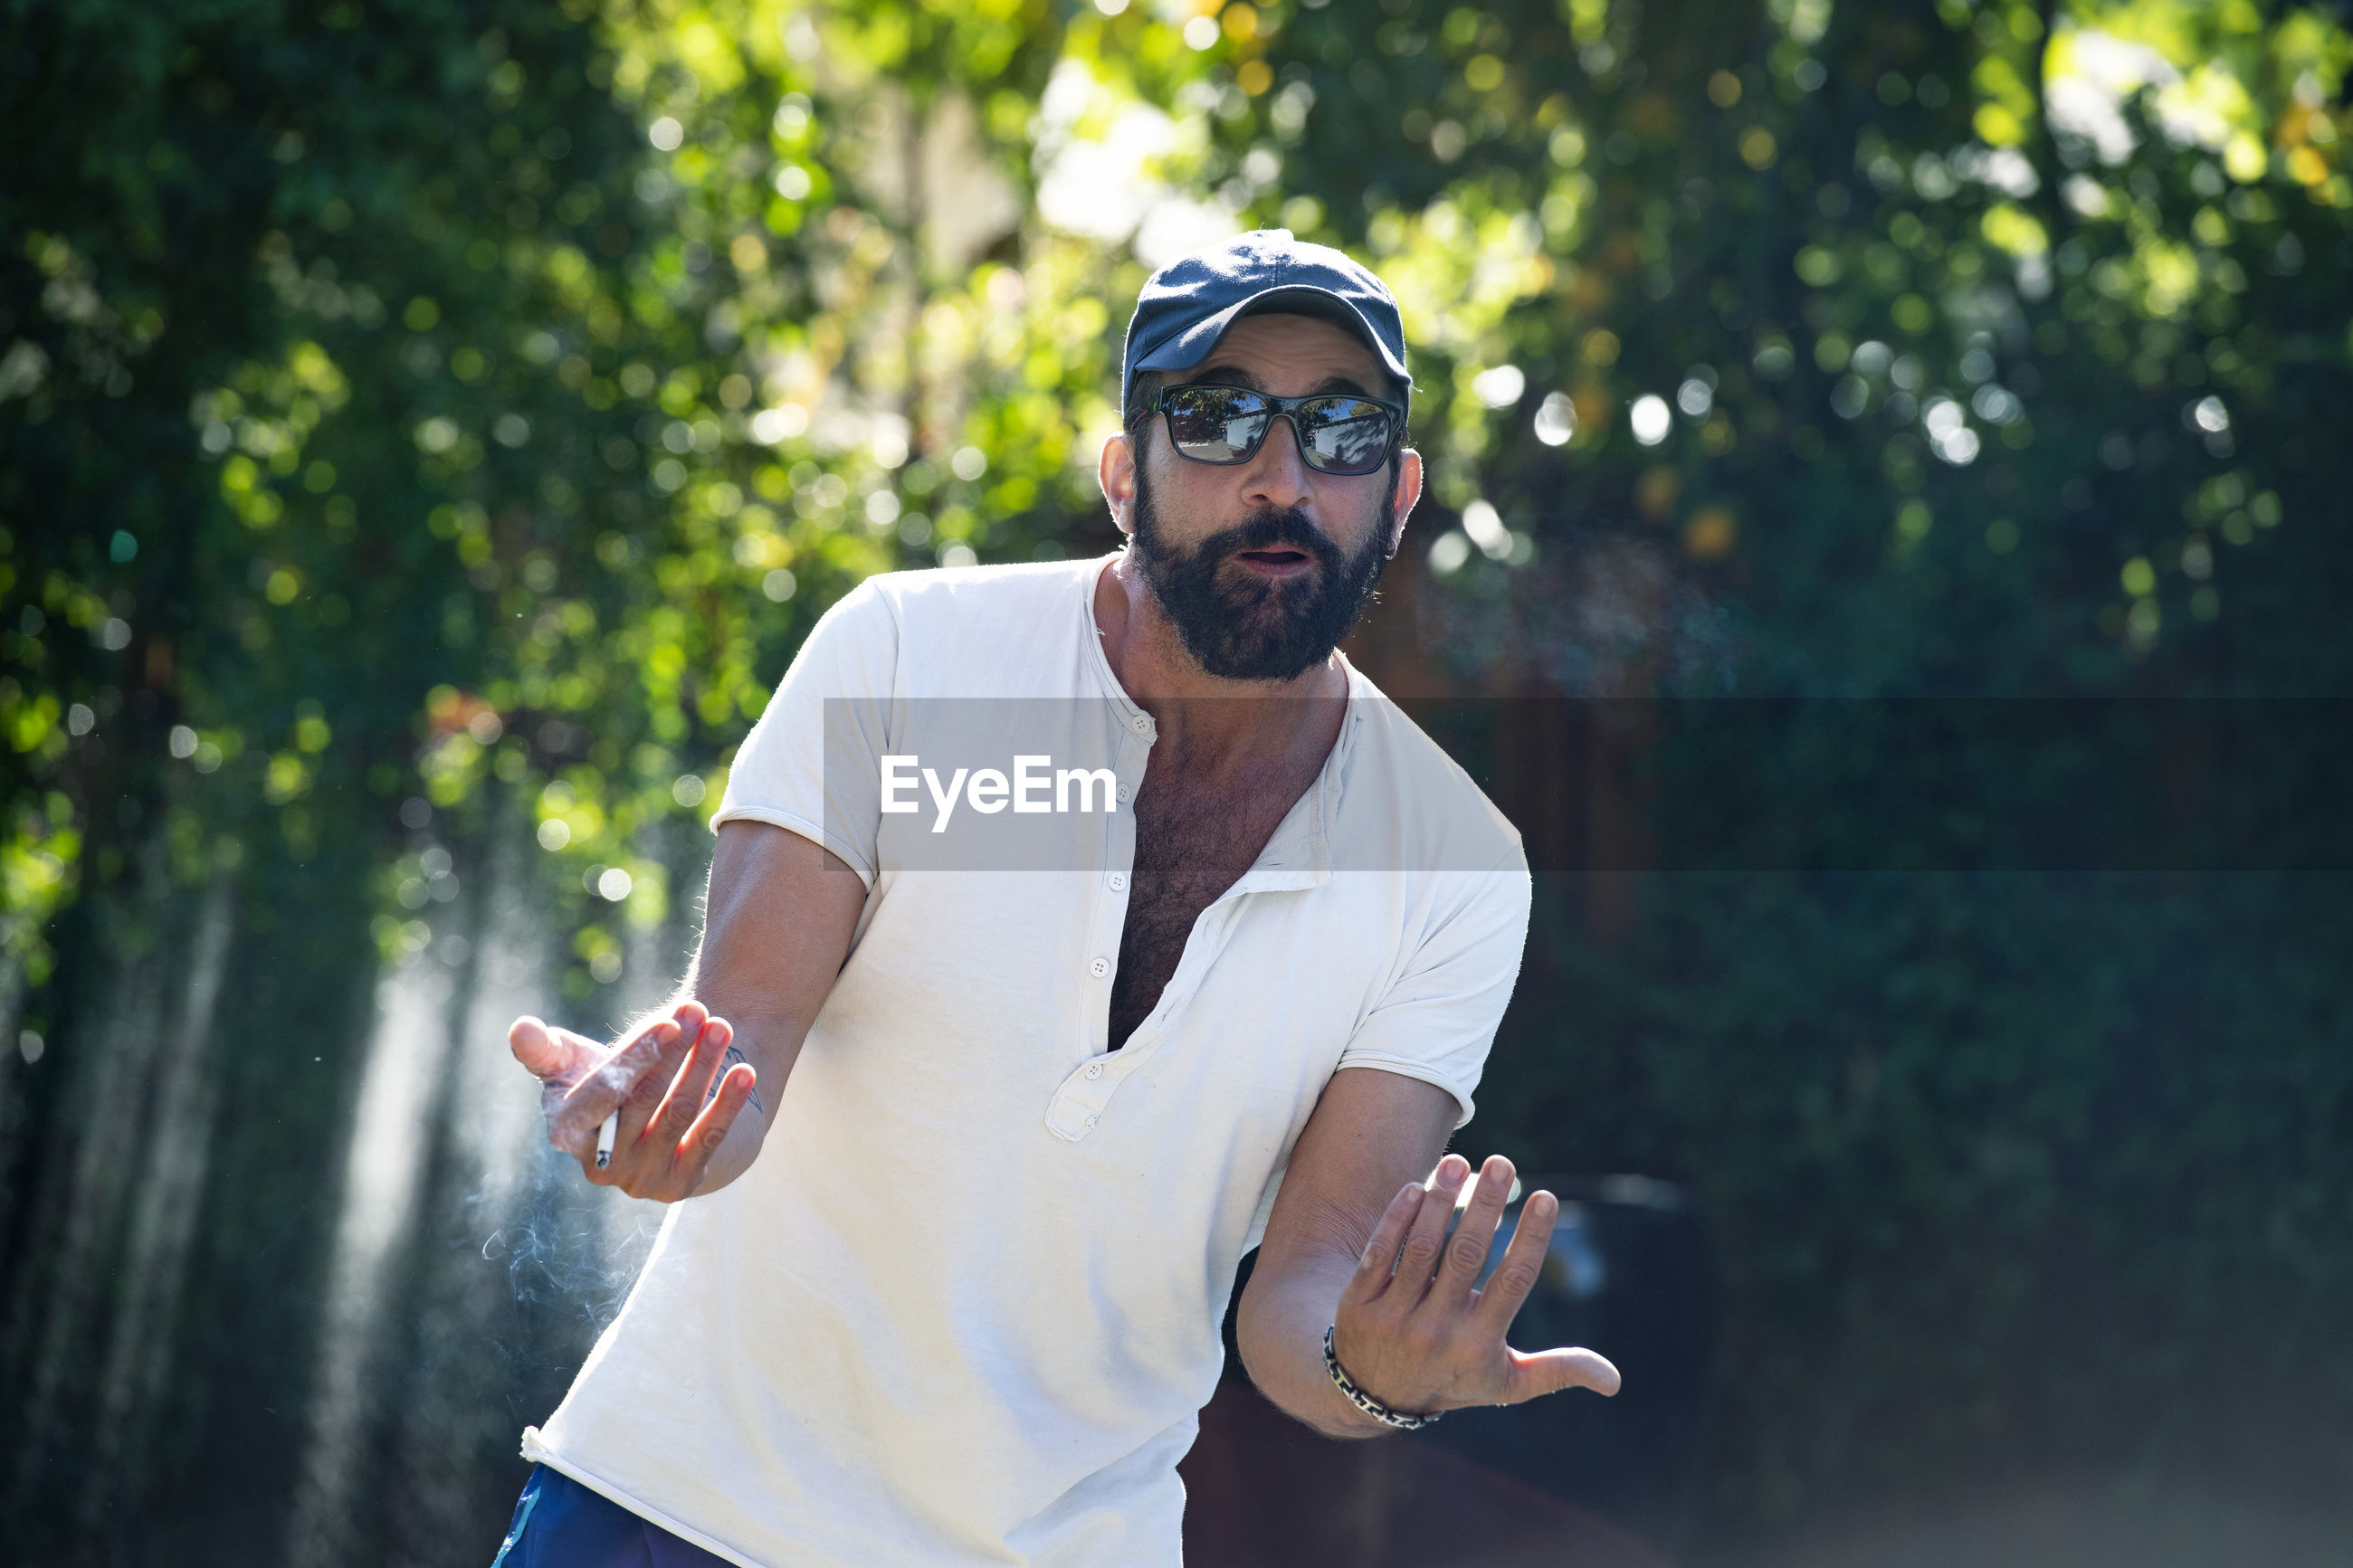 Man wearing sunglasses smoking cigarette against trees